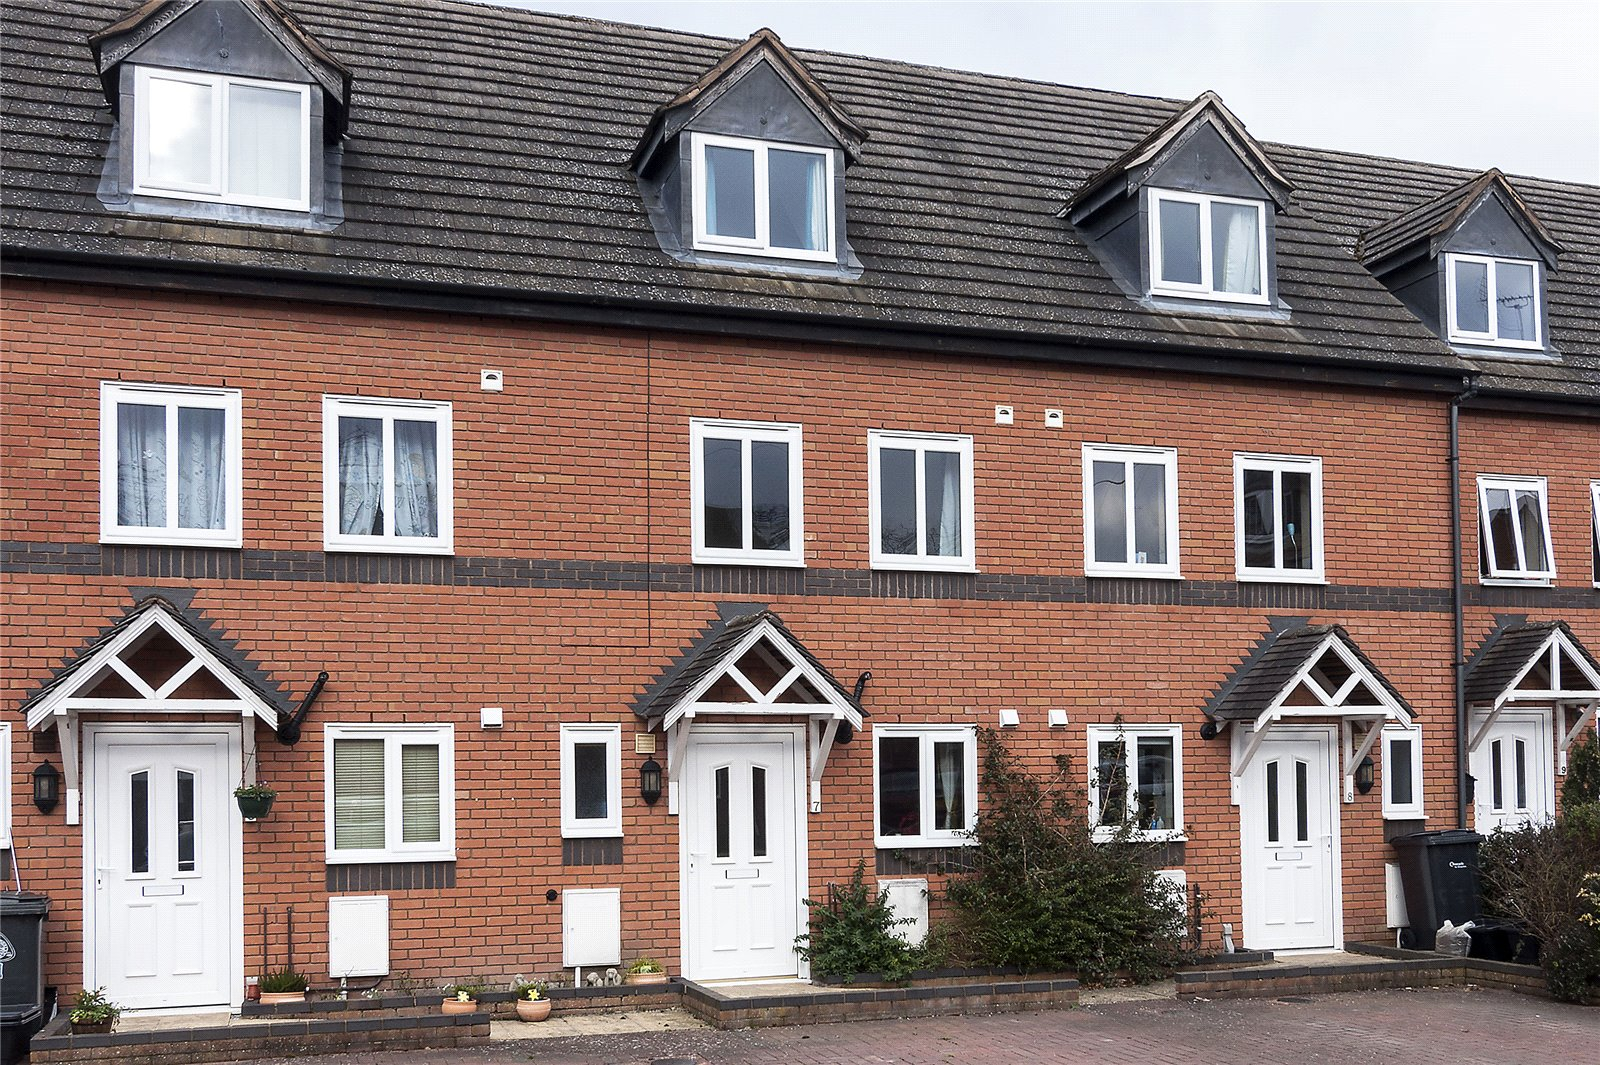 3 Bedrooms Terraced House for rent in 7 Felton Close, Ludlow, SY8